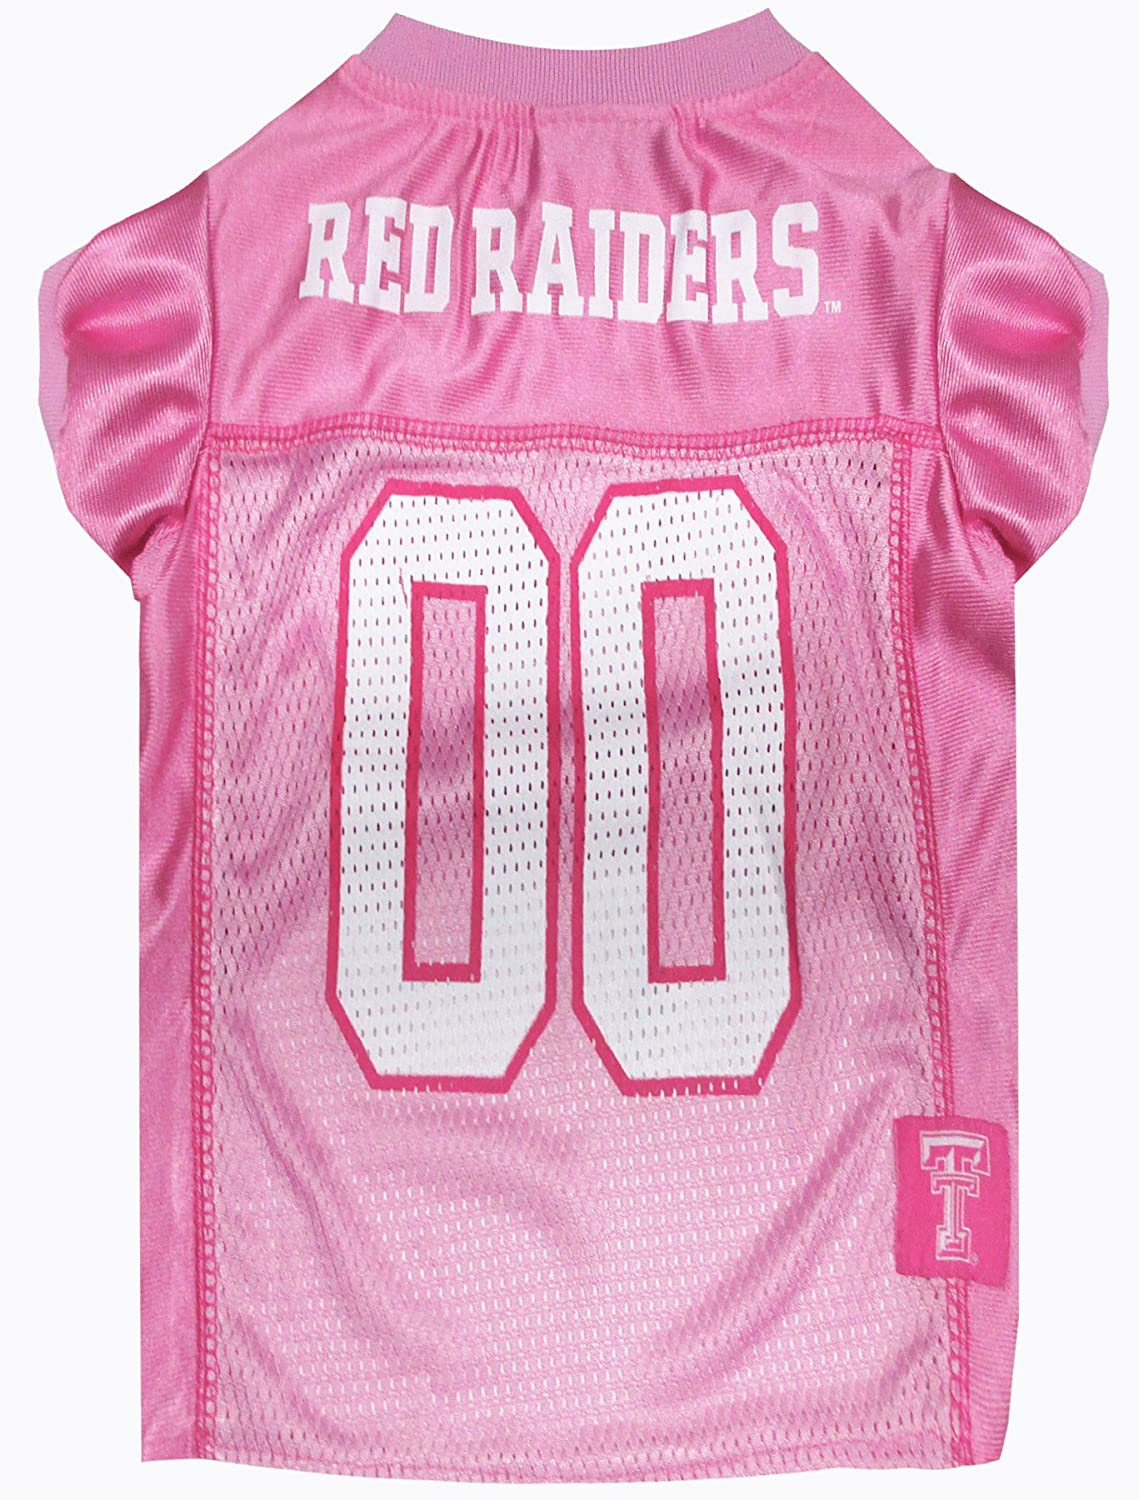 NCAA Texas TECH RED Raiders Dog Pink Jersey, Small. - Pet Pink Outfit.